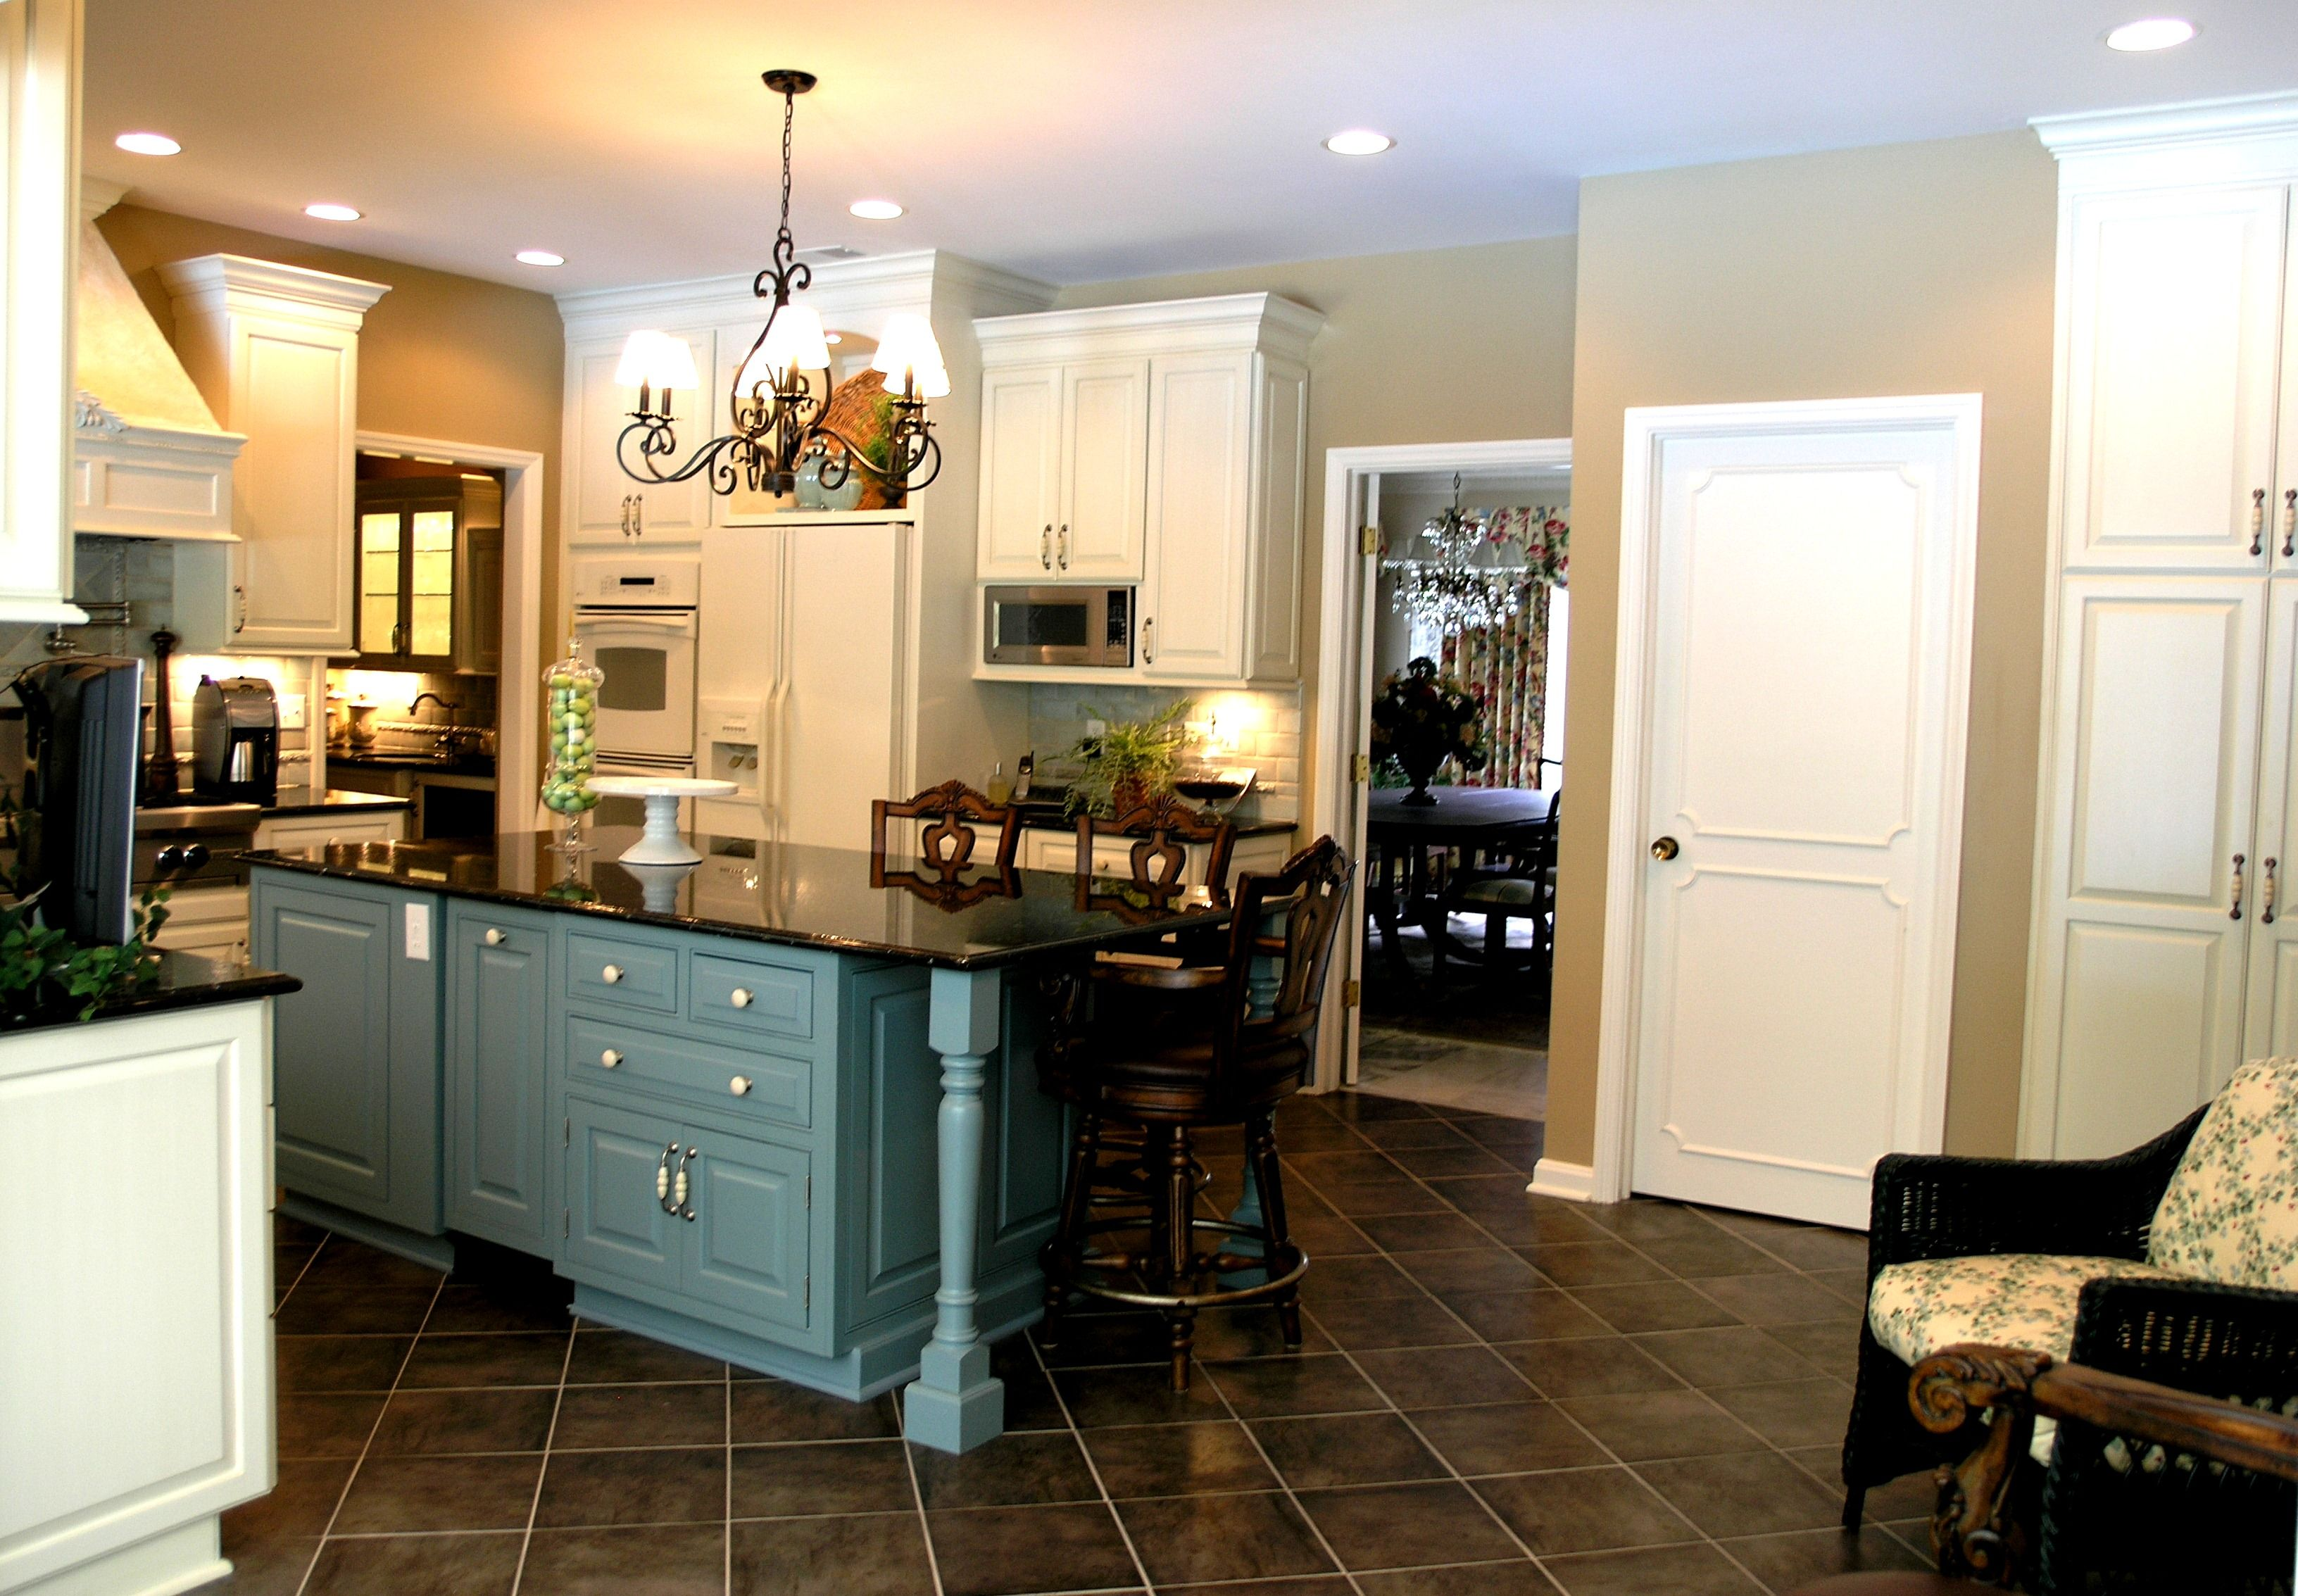 Kitchen Floor Ideas With Dark Cabinets Blue Cabinets Dark Tile Floors Tile At An Angle Instead